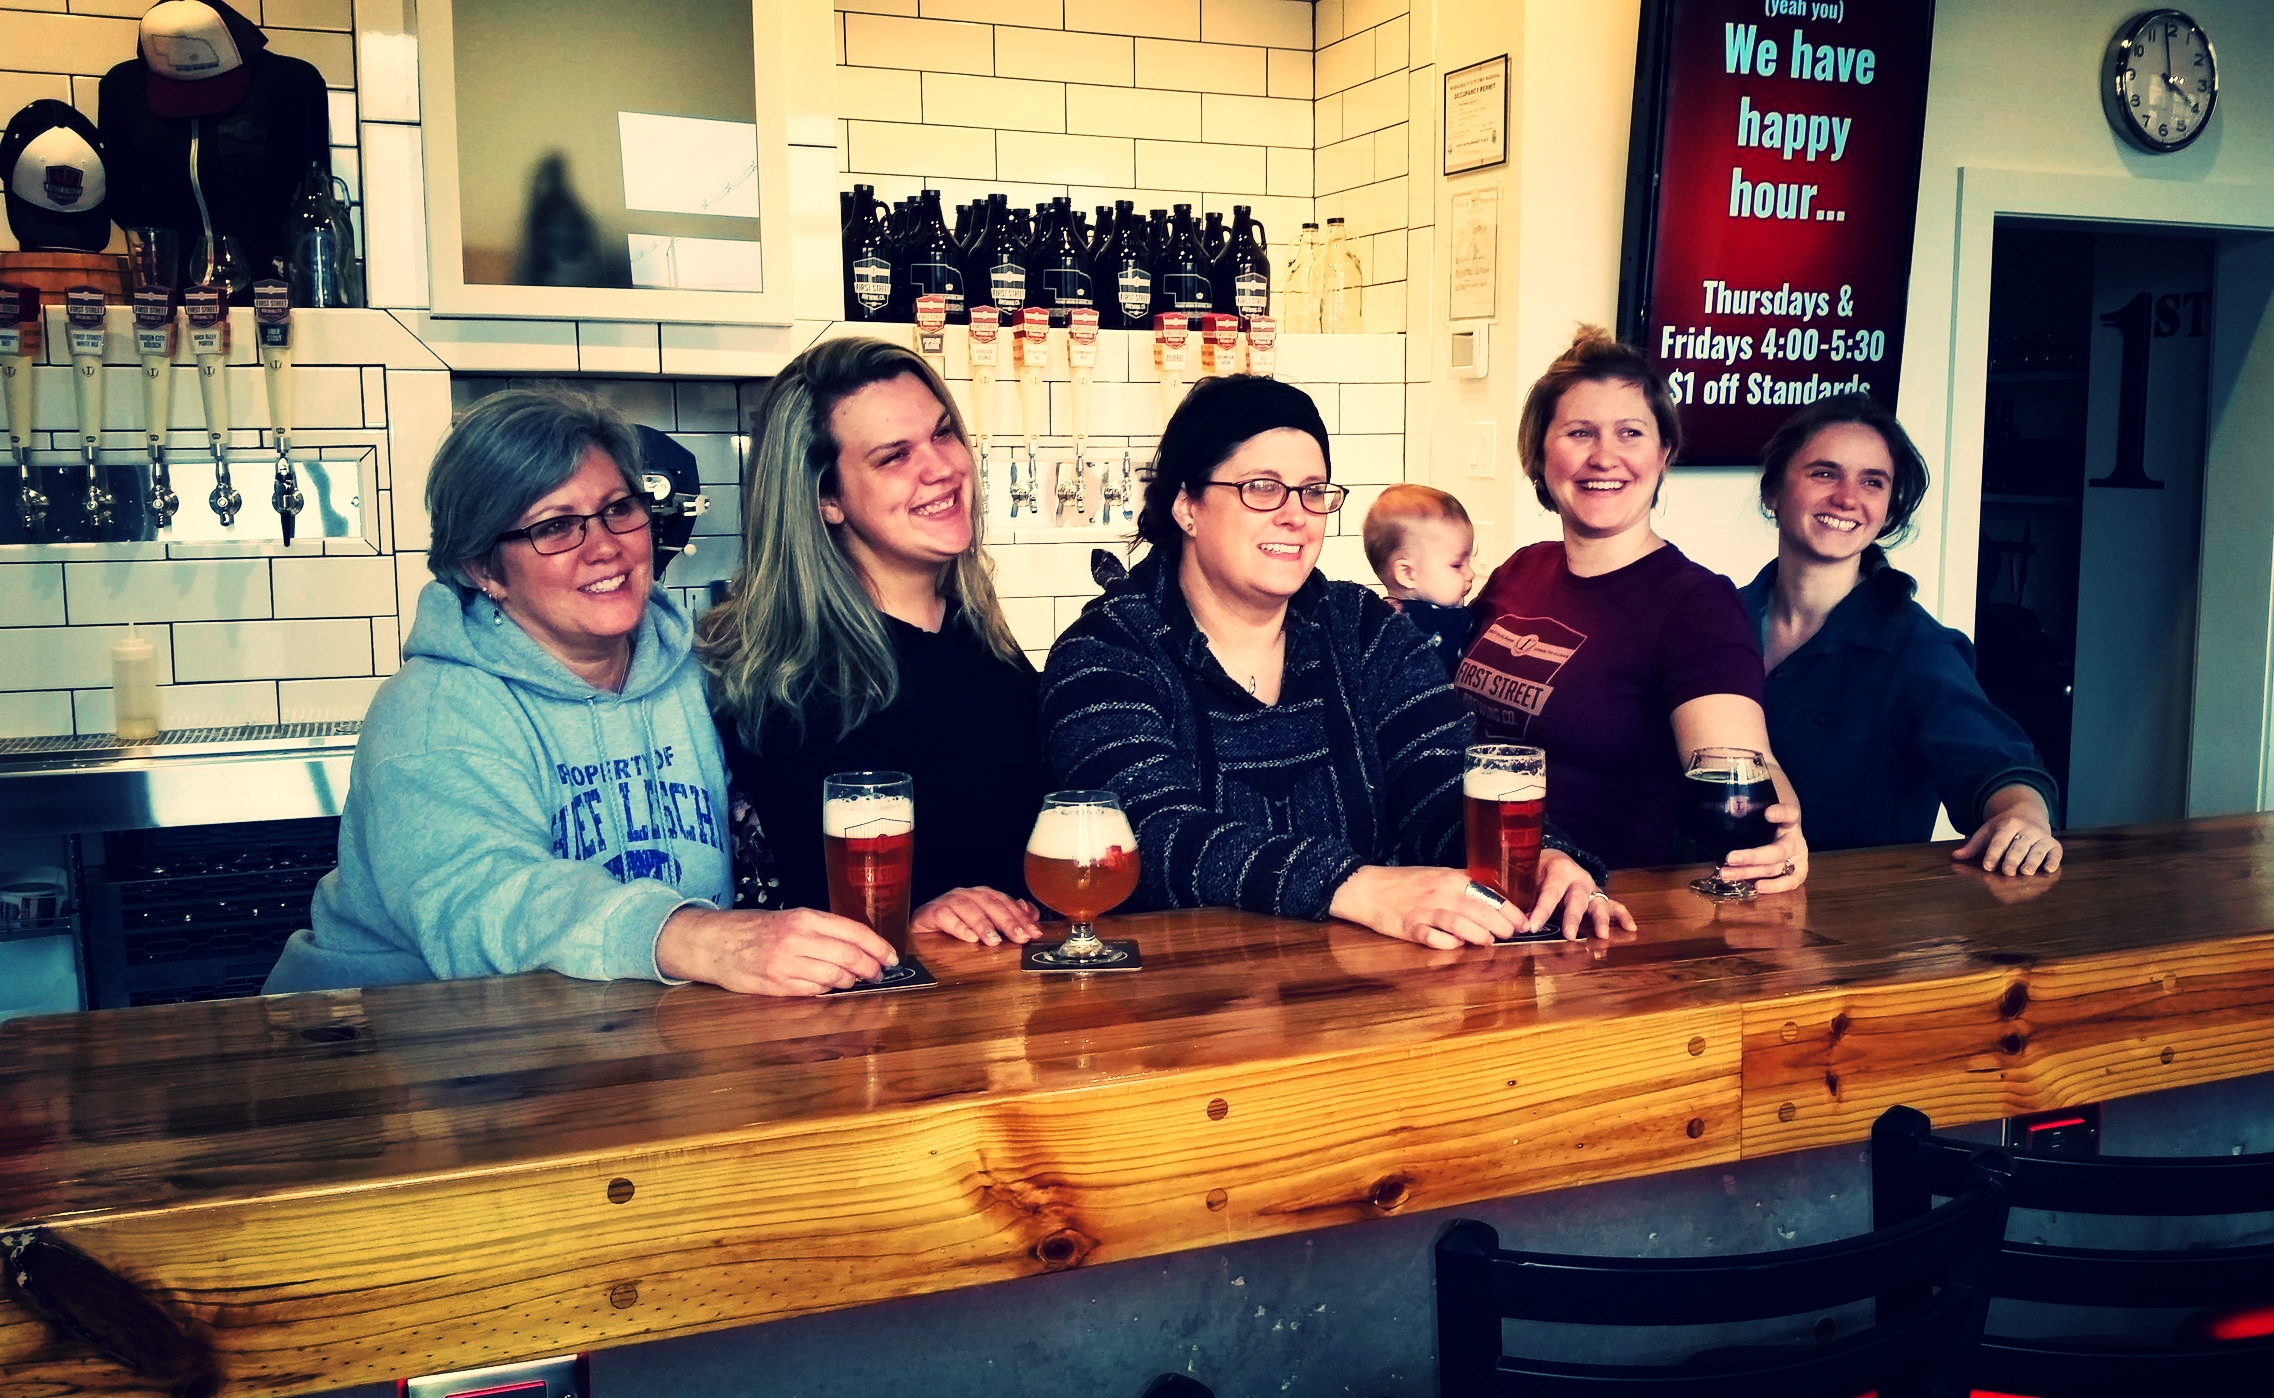 From from left to right Deb Russell beertender, Brittany Henderson beertender, Jessi Hoeft co-owner, talker of beer, Maddon Williams brewery baby, Megan Arrington-Williams director of operations and marketing, and Carey McGehee beertender. Not pictured Jodi Bahr beertender and Gayle Mohlman bookkeeper